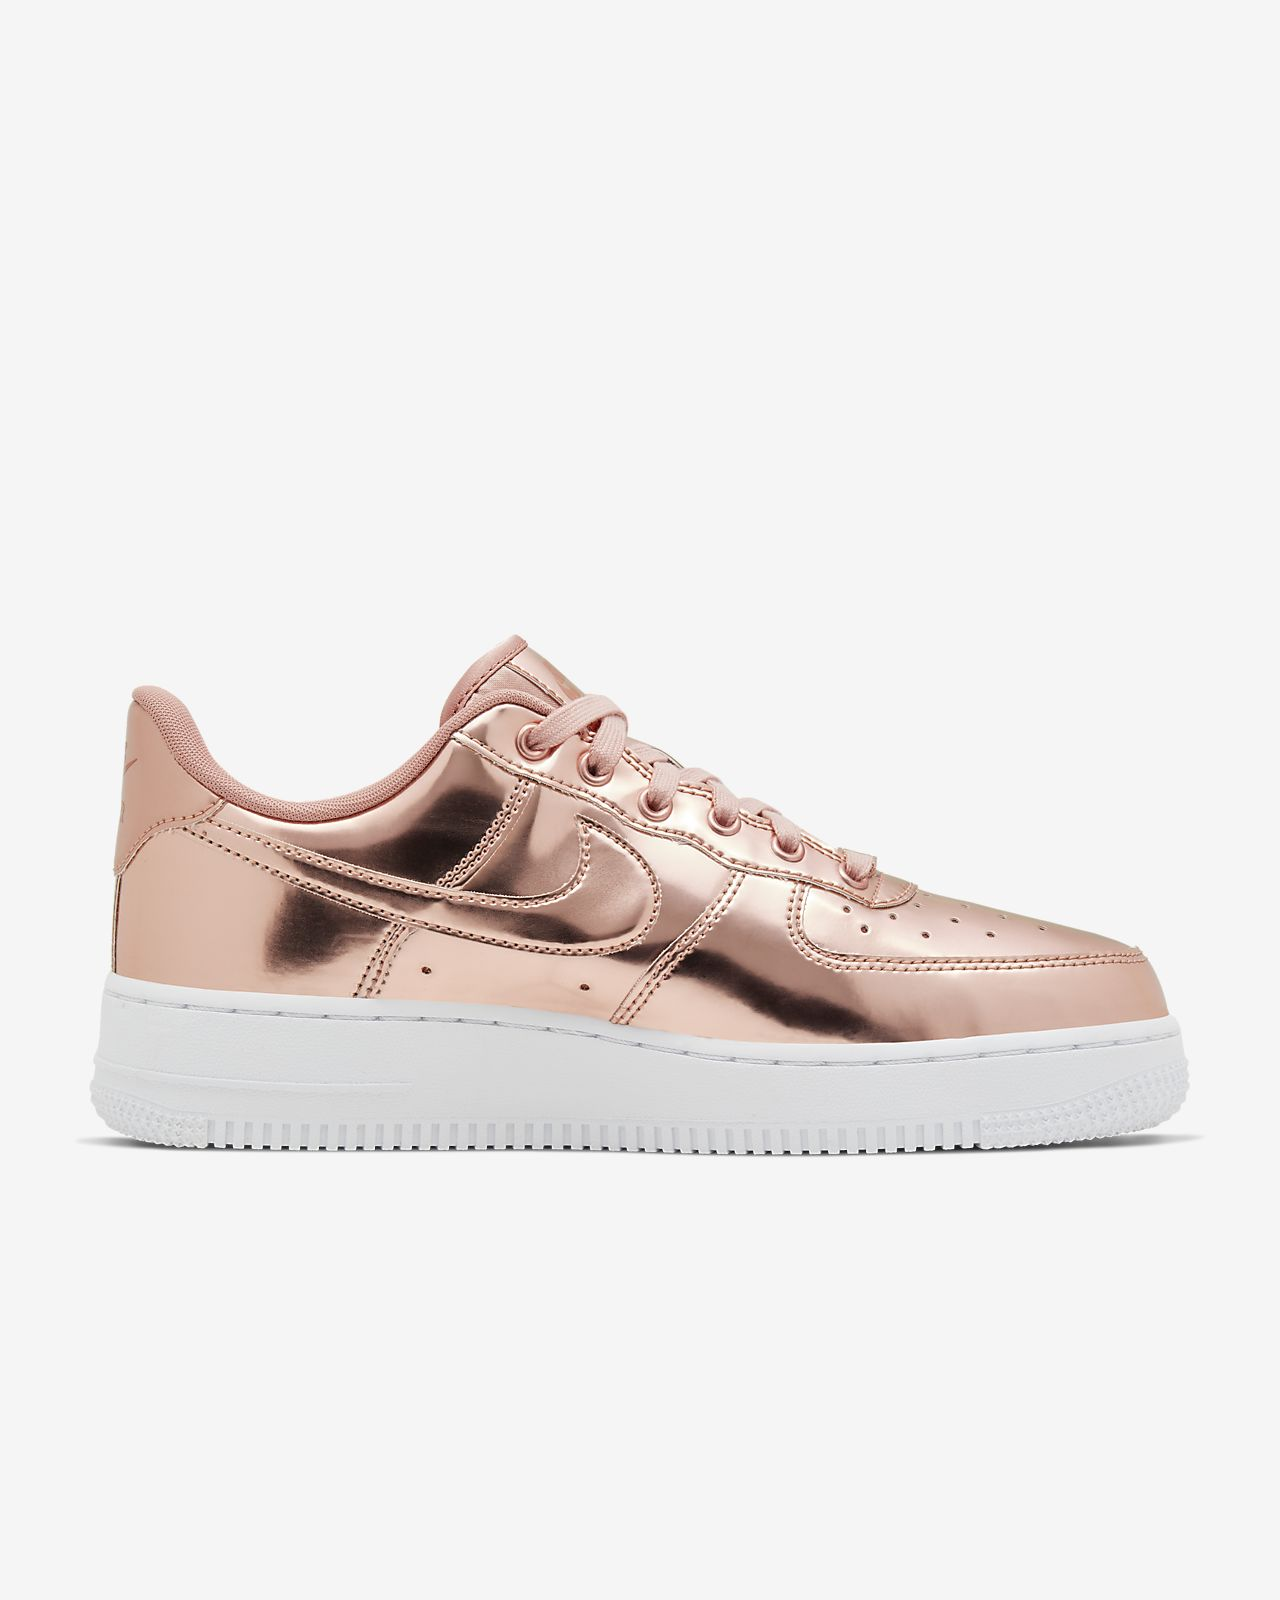 Nike Air Force 1 Metallic Silver Rose Yellow Gold | HYPEBAE